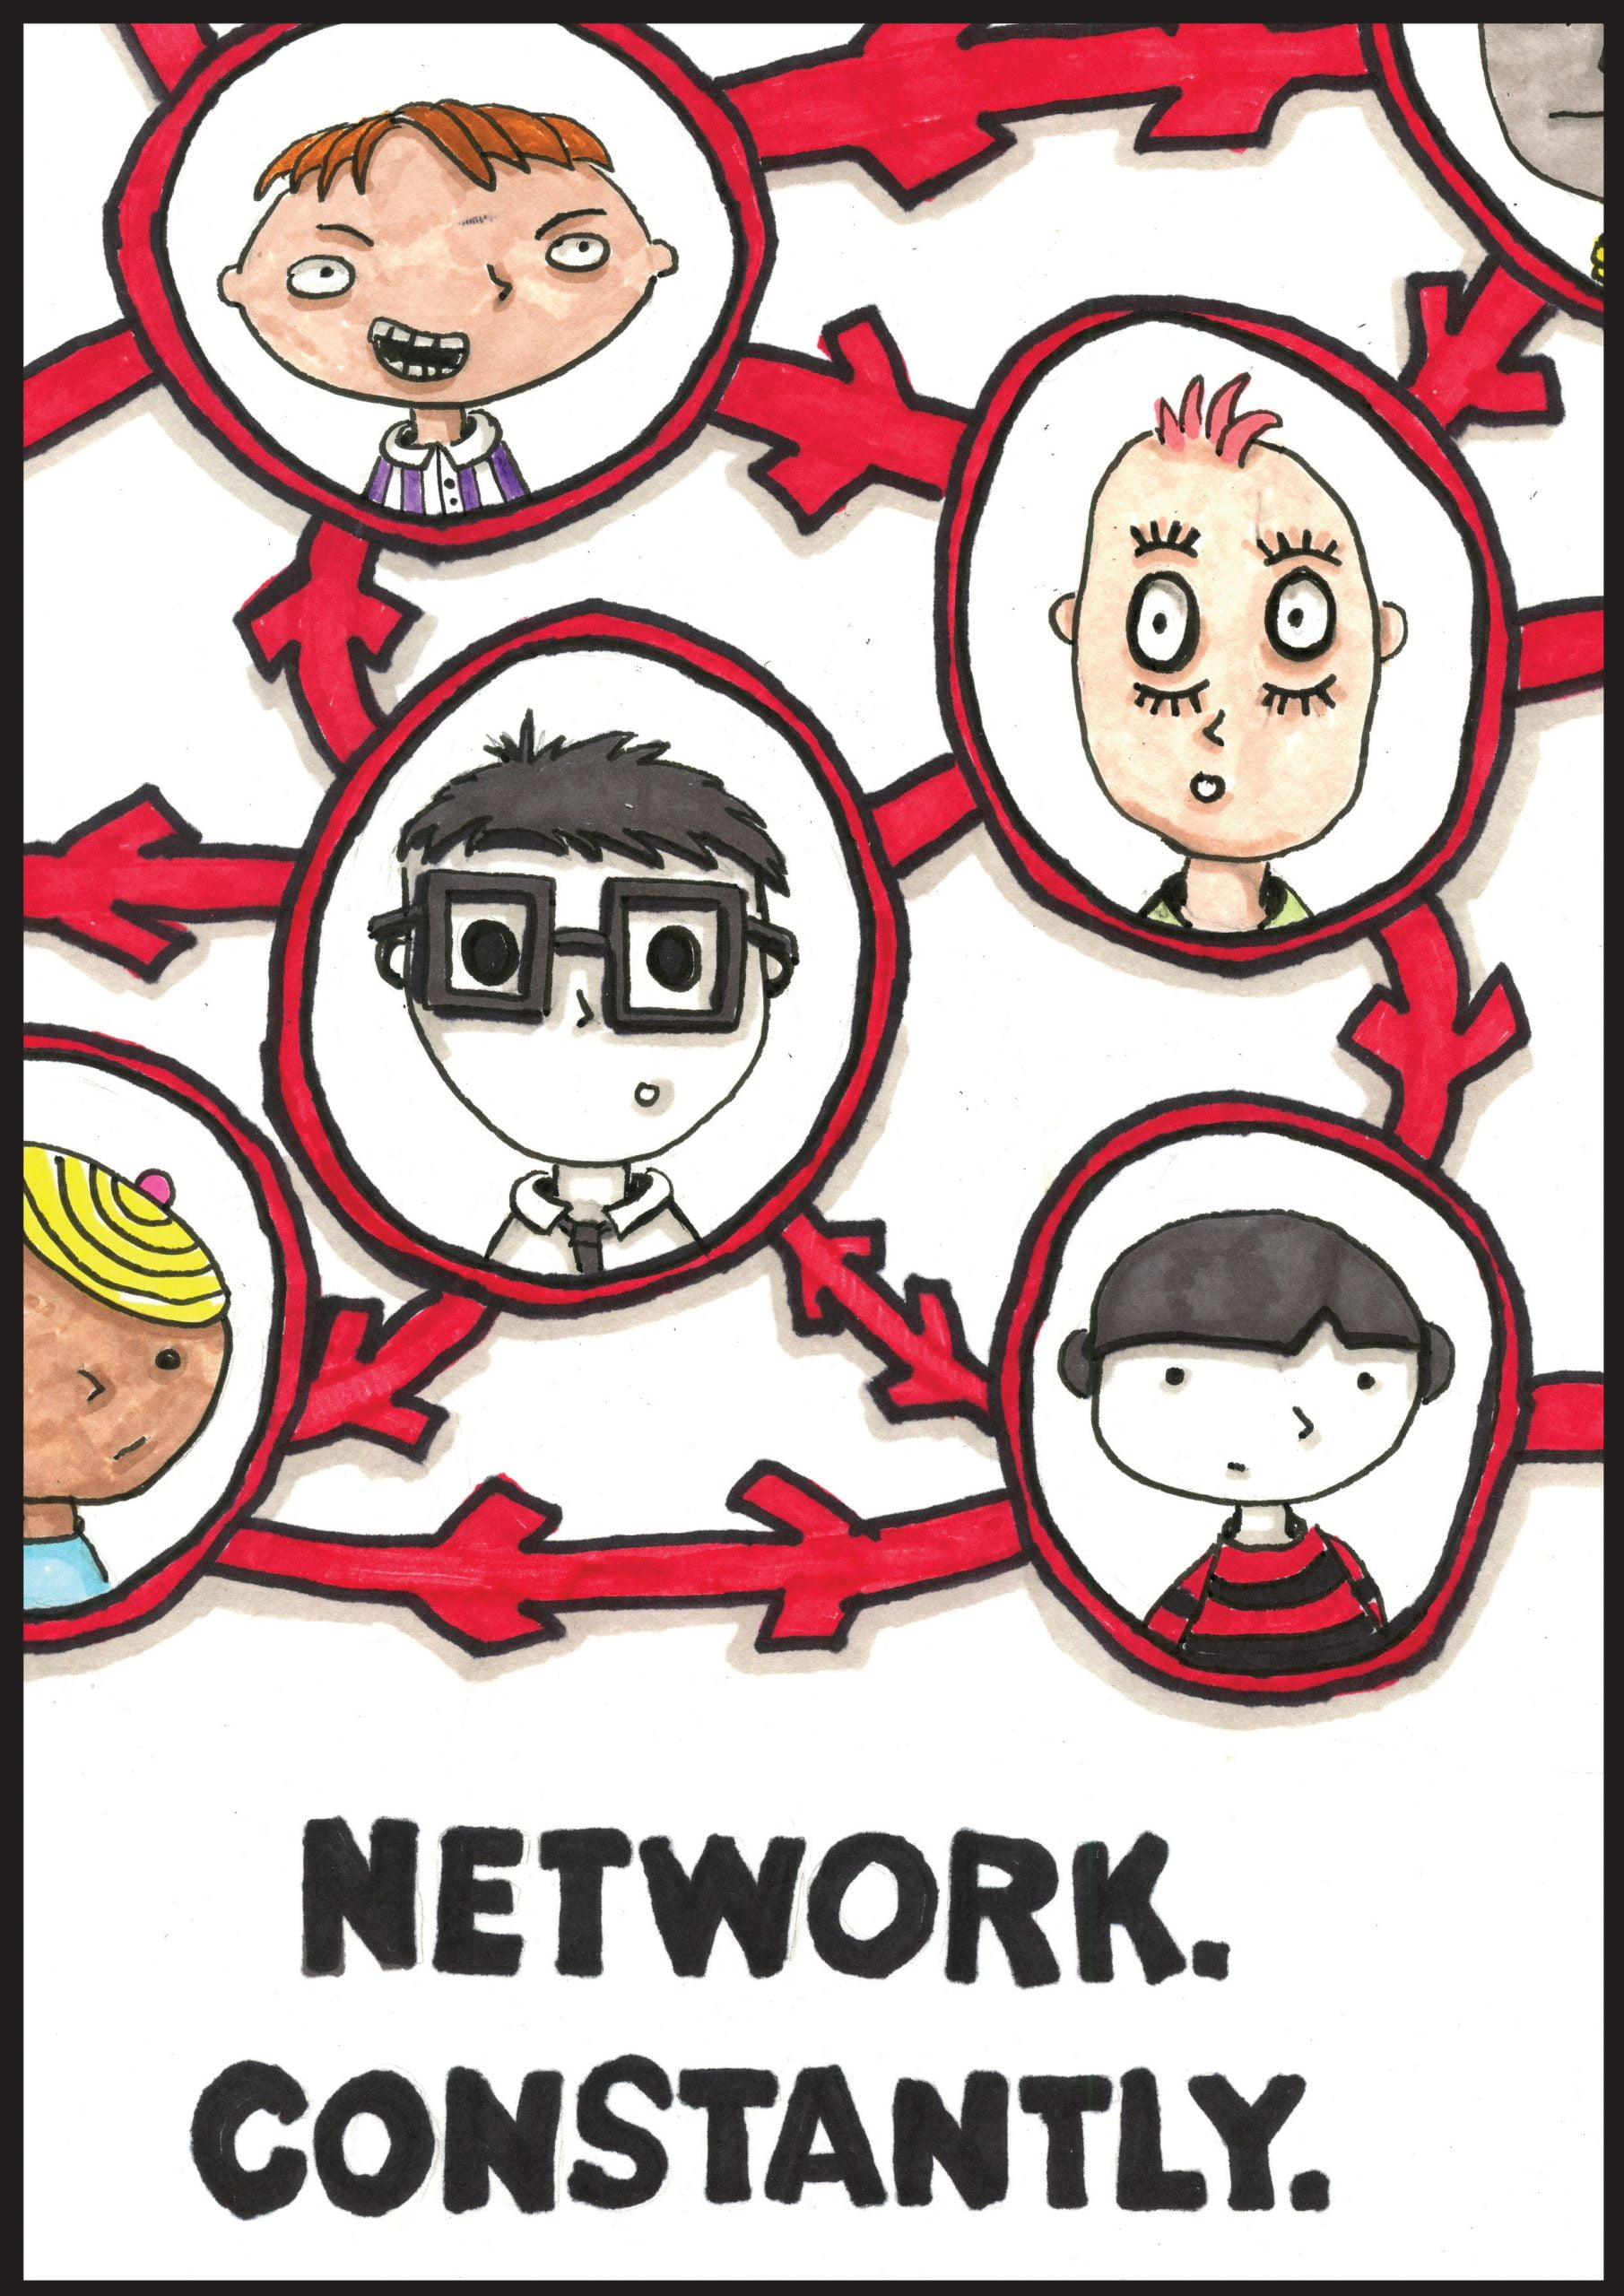 """Multiple faces with different appearances are contained in thick red circles outlined in black. Each of these circles have lines connecting the circles with arrows pointing in various directions. In thick black writing below the faces reads: """"Network. Constantly."""""""